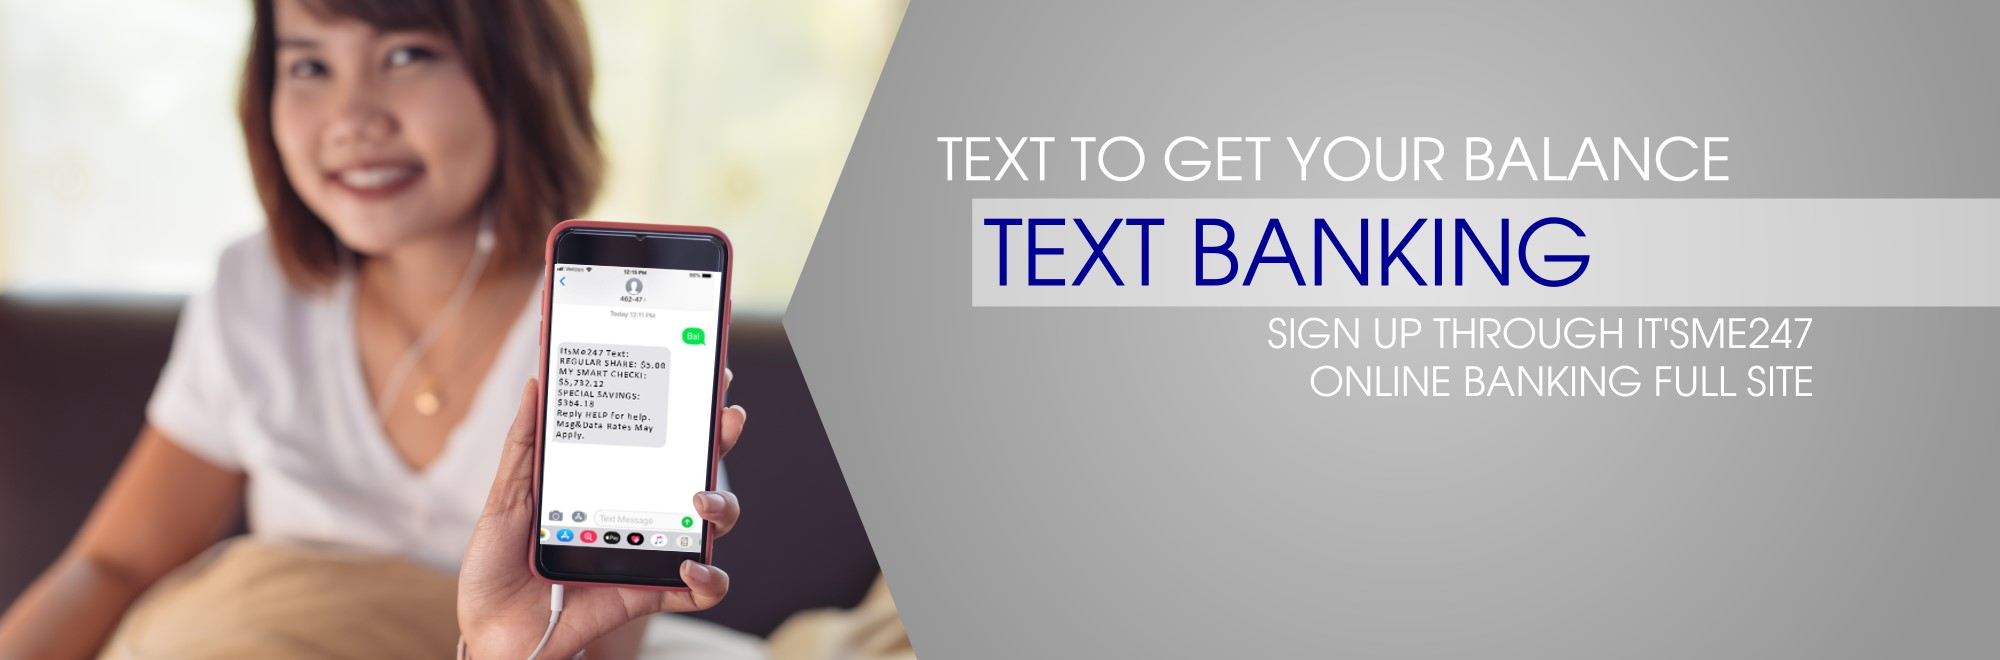 text to get your balances with text banking